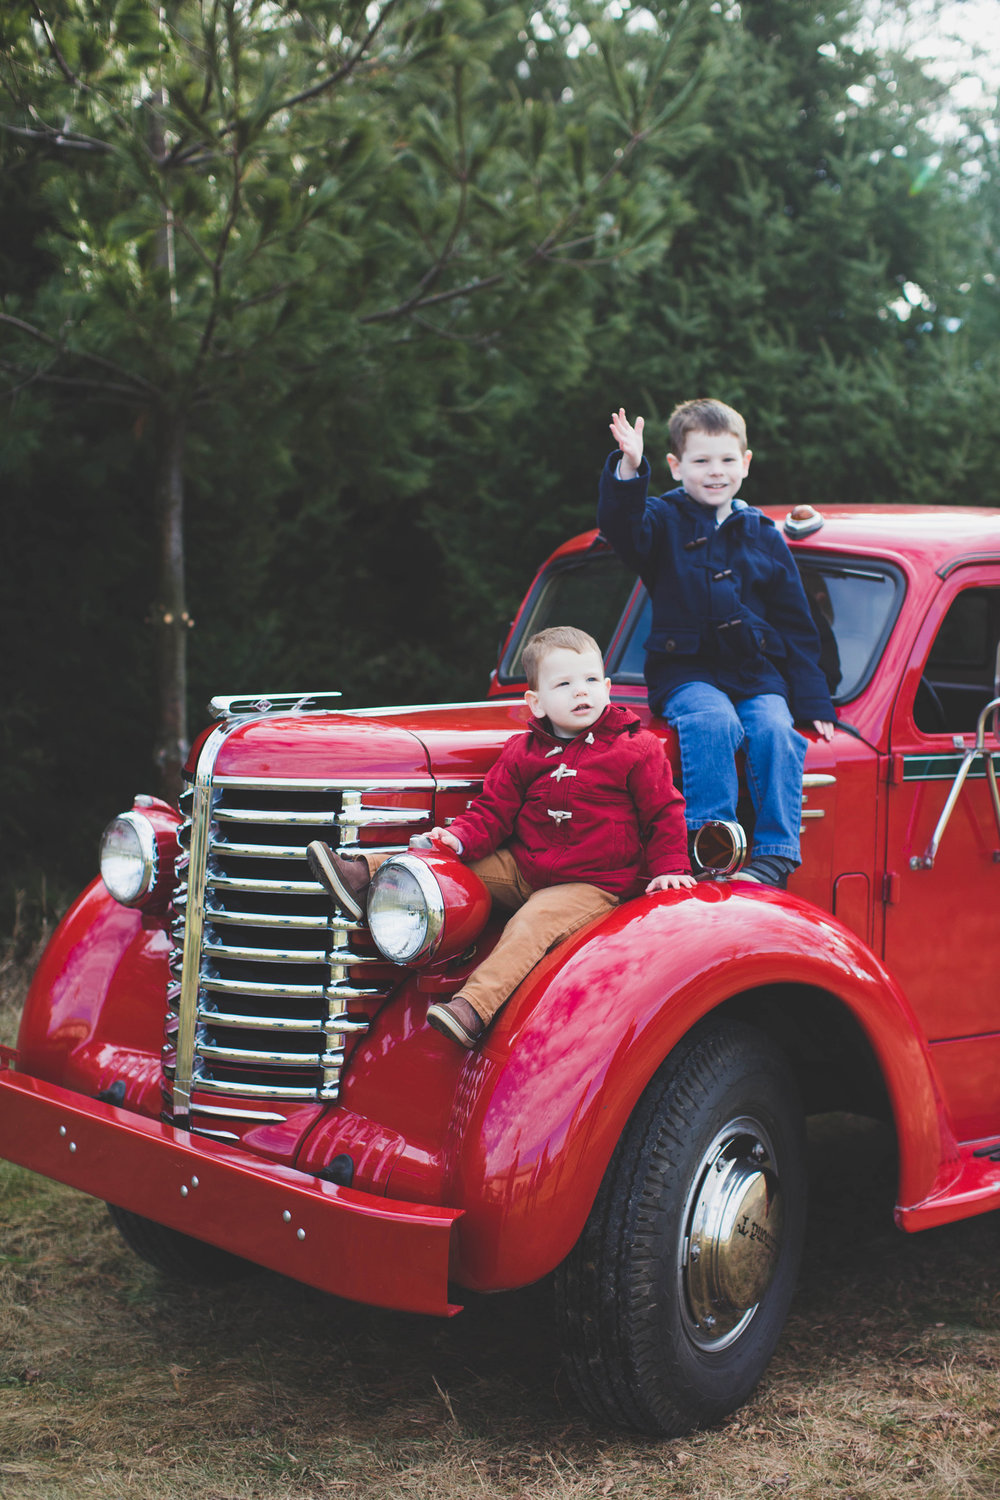 midwest family photographer 08.jpg